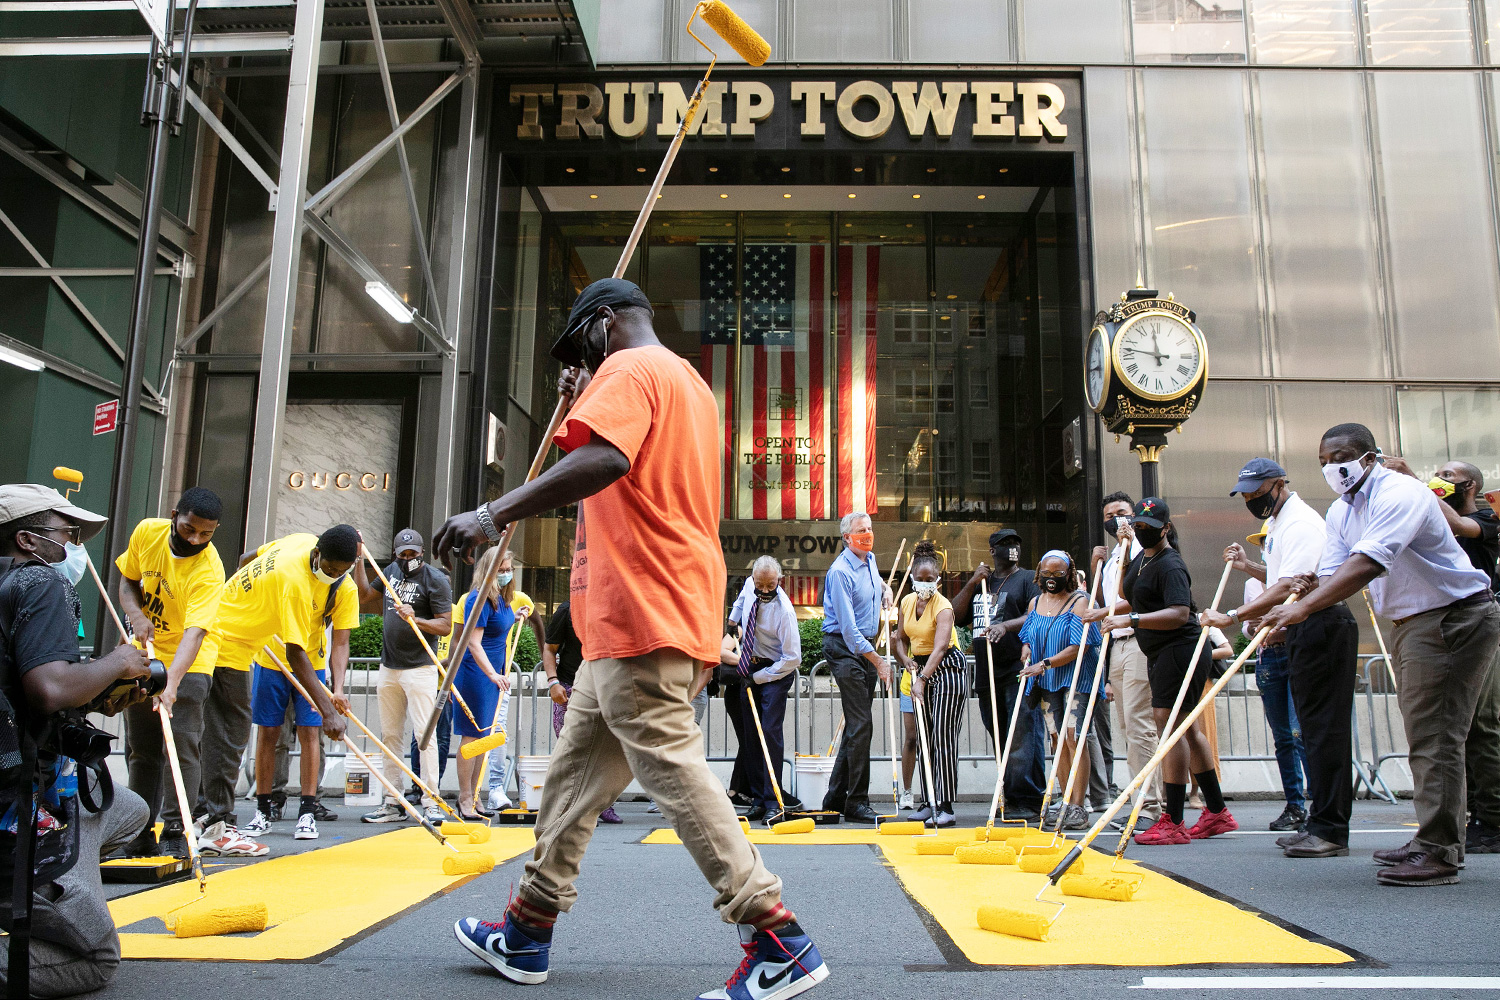 Black Lives Matter is painted on Fifth Avenue in front of Trump Tower, in New York